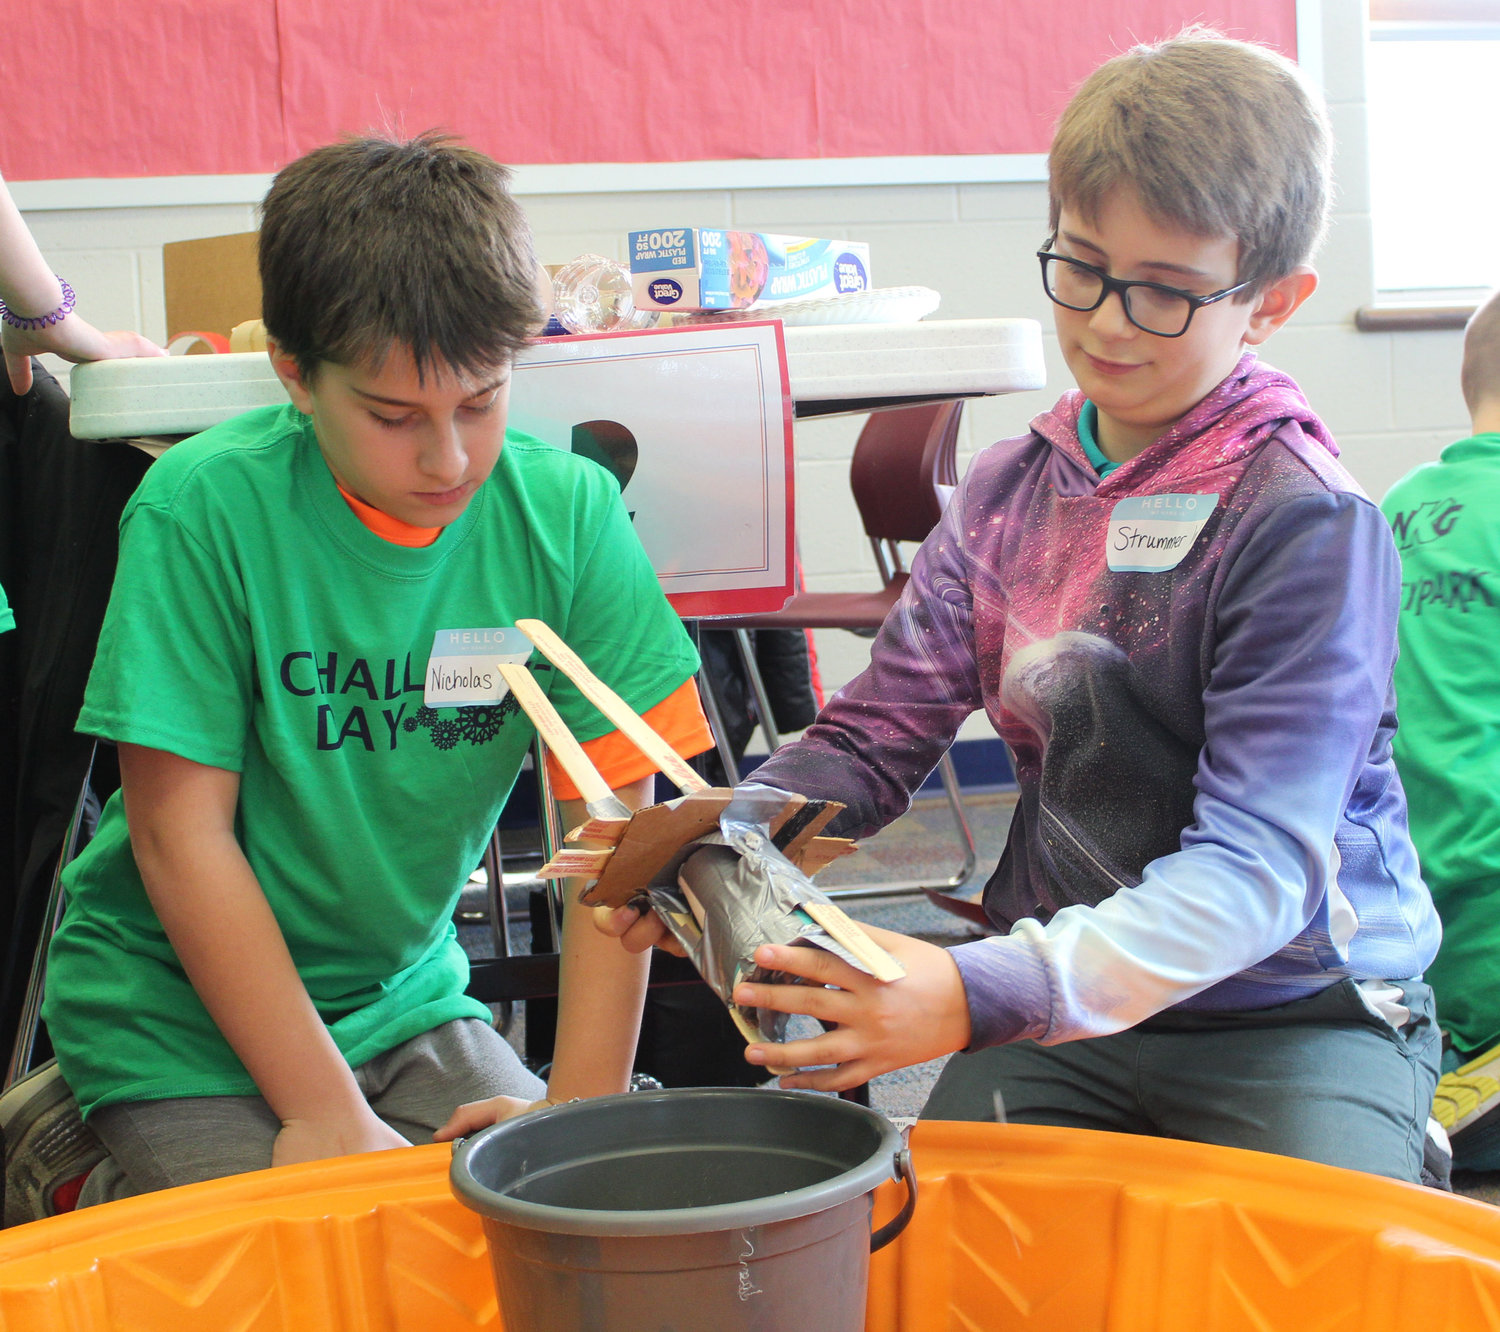 Palmyra's Nicholas Campisano builds a tower with Middletown student Strummer Woodworth during the Challenge Day on Nov. 29. Students in gifted programs from four area school districts were challenged to focus on foundation and build a tower that could withstand wind, an earthquake and weight.